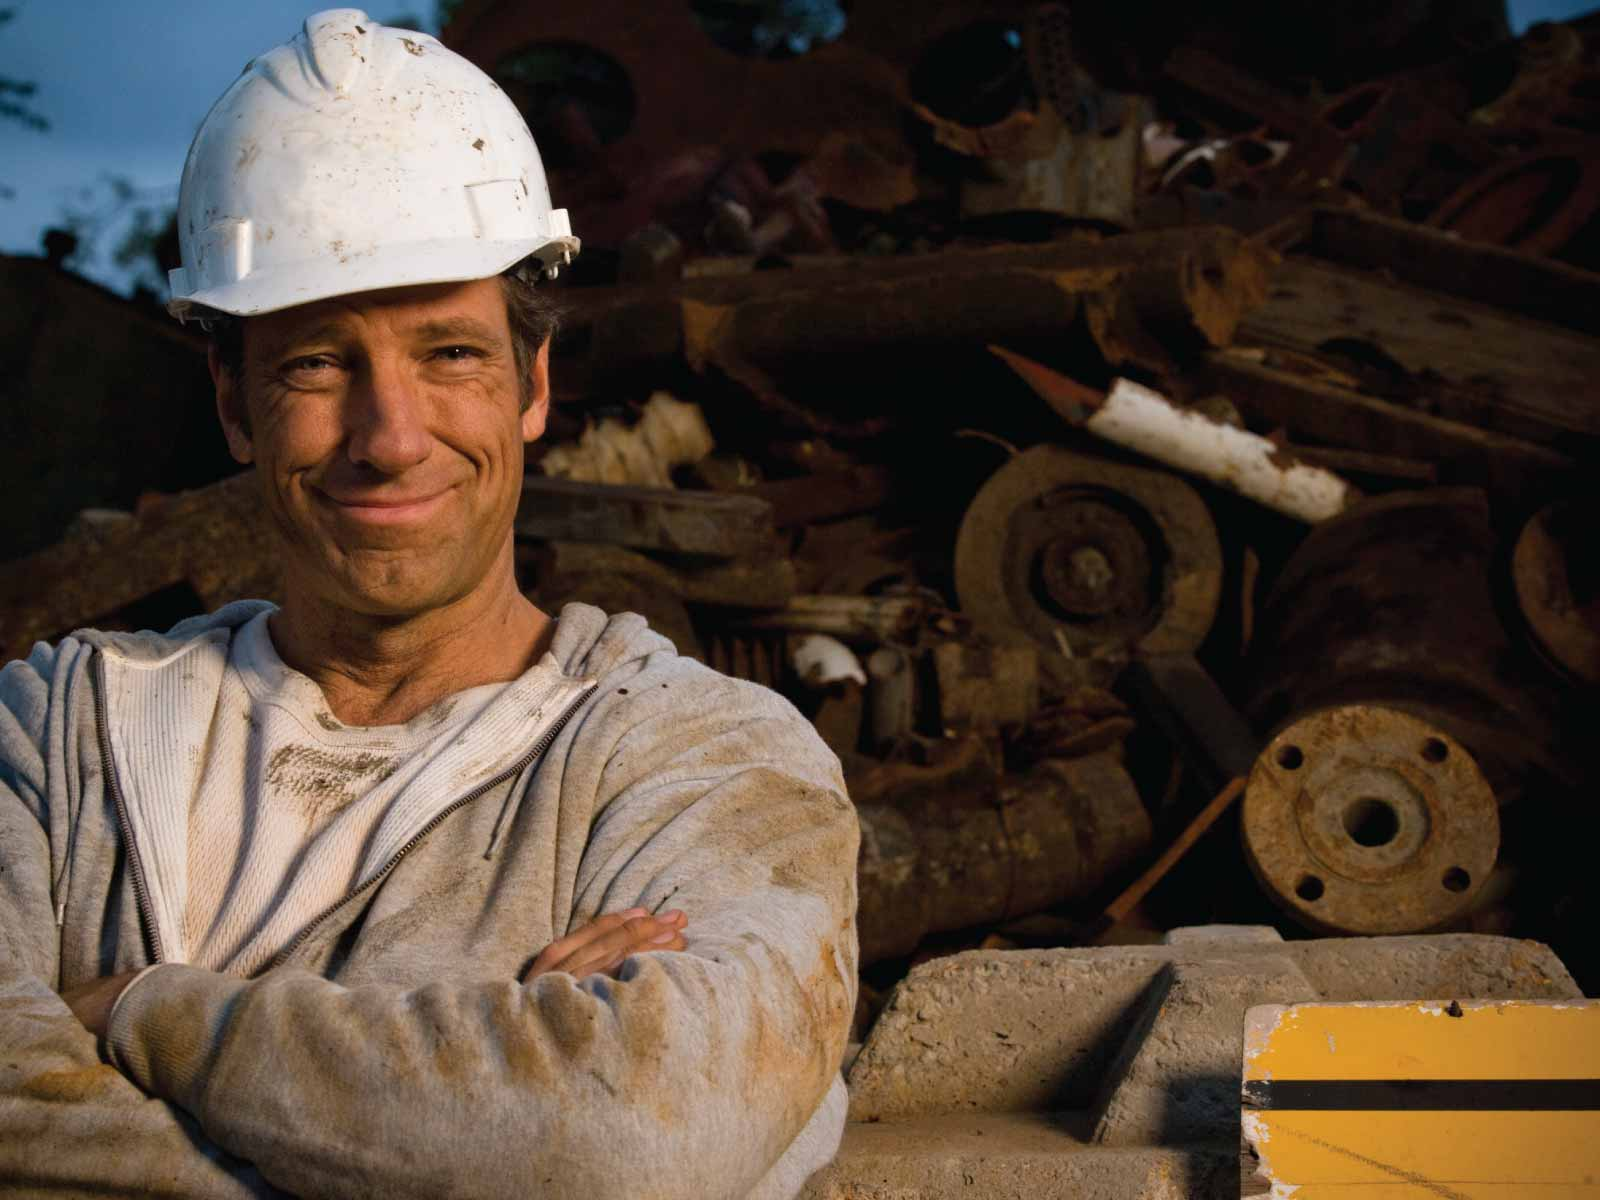 mike rowe wifemike rowe trump, mike rowe ted, mike rowe dirty jobs, mike rowe learning from dirty jobs, mike rowe microworks, mike rowe dead, mike rowe workout, mike rowe wife, mike rowe show, mike rowe wiki, mike rowe soft, mike rowe soft vs microsoft, mike rowe ted talk, mike rowe, mike rowe married, mike rowe works, mike rowe singing, mike rowe book, mike rowe wikipedia, mike rowe net worth